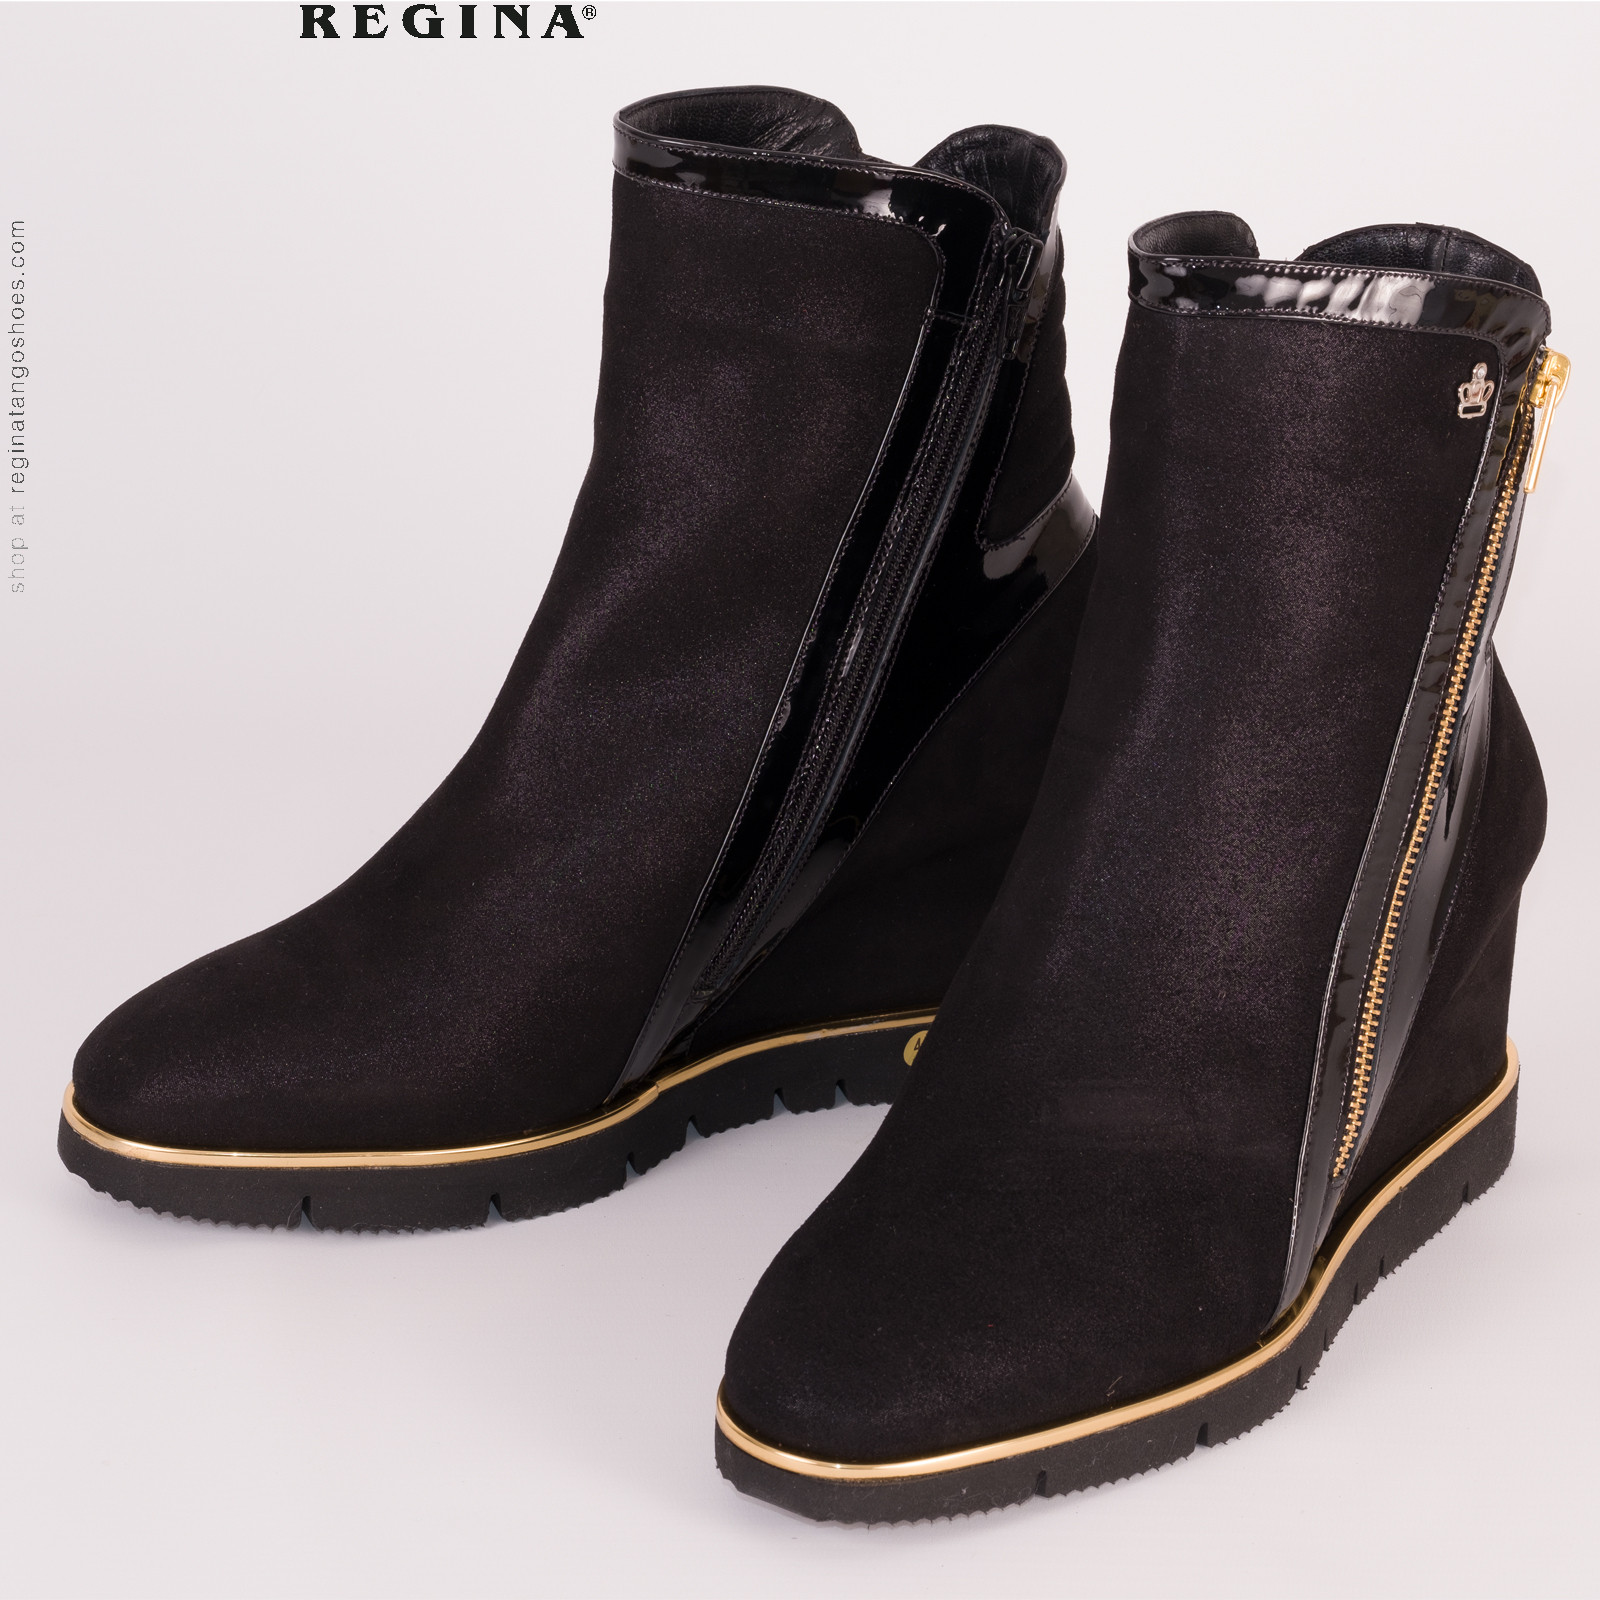 Boots sharlotka front